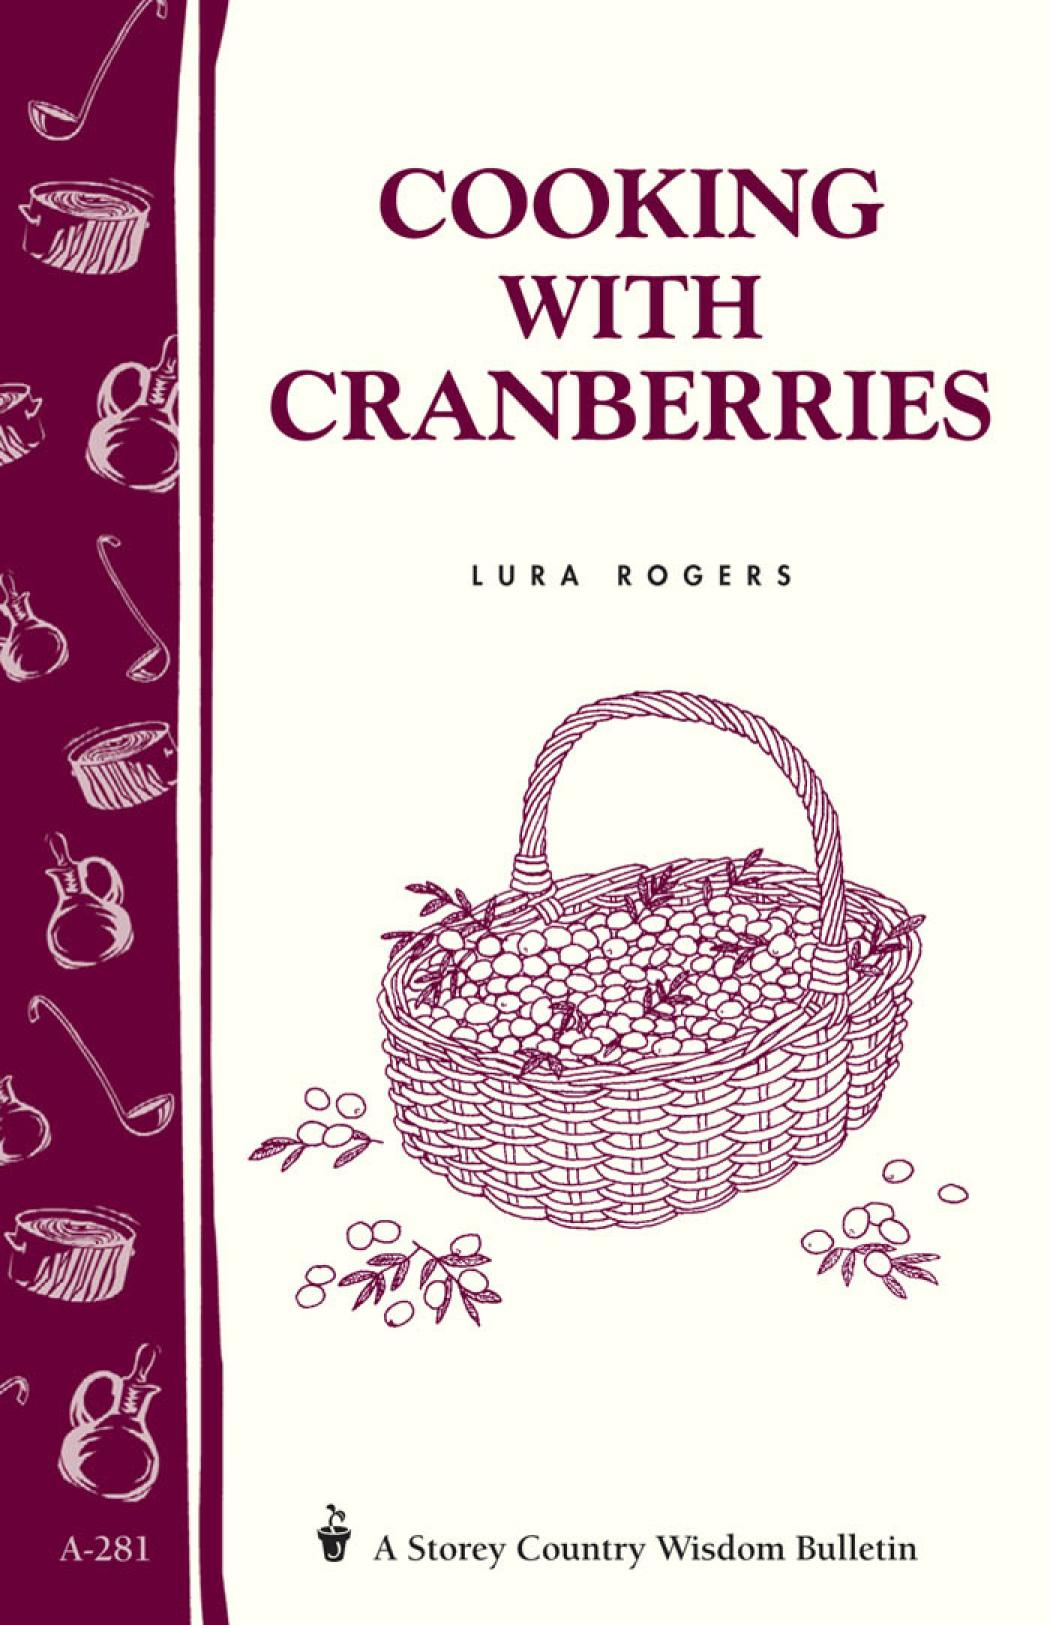 Cooking with Cranberries: Storey's Country Wisdom Bulletin A-281 EB9781603423977